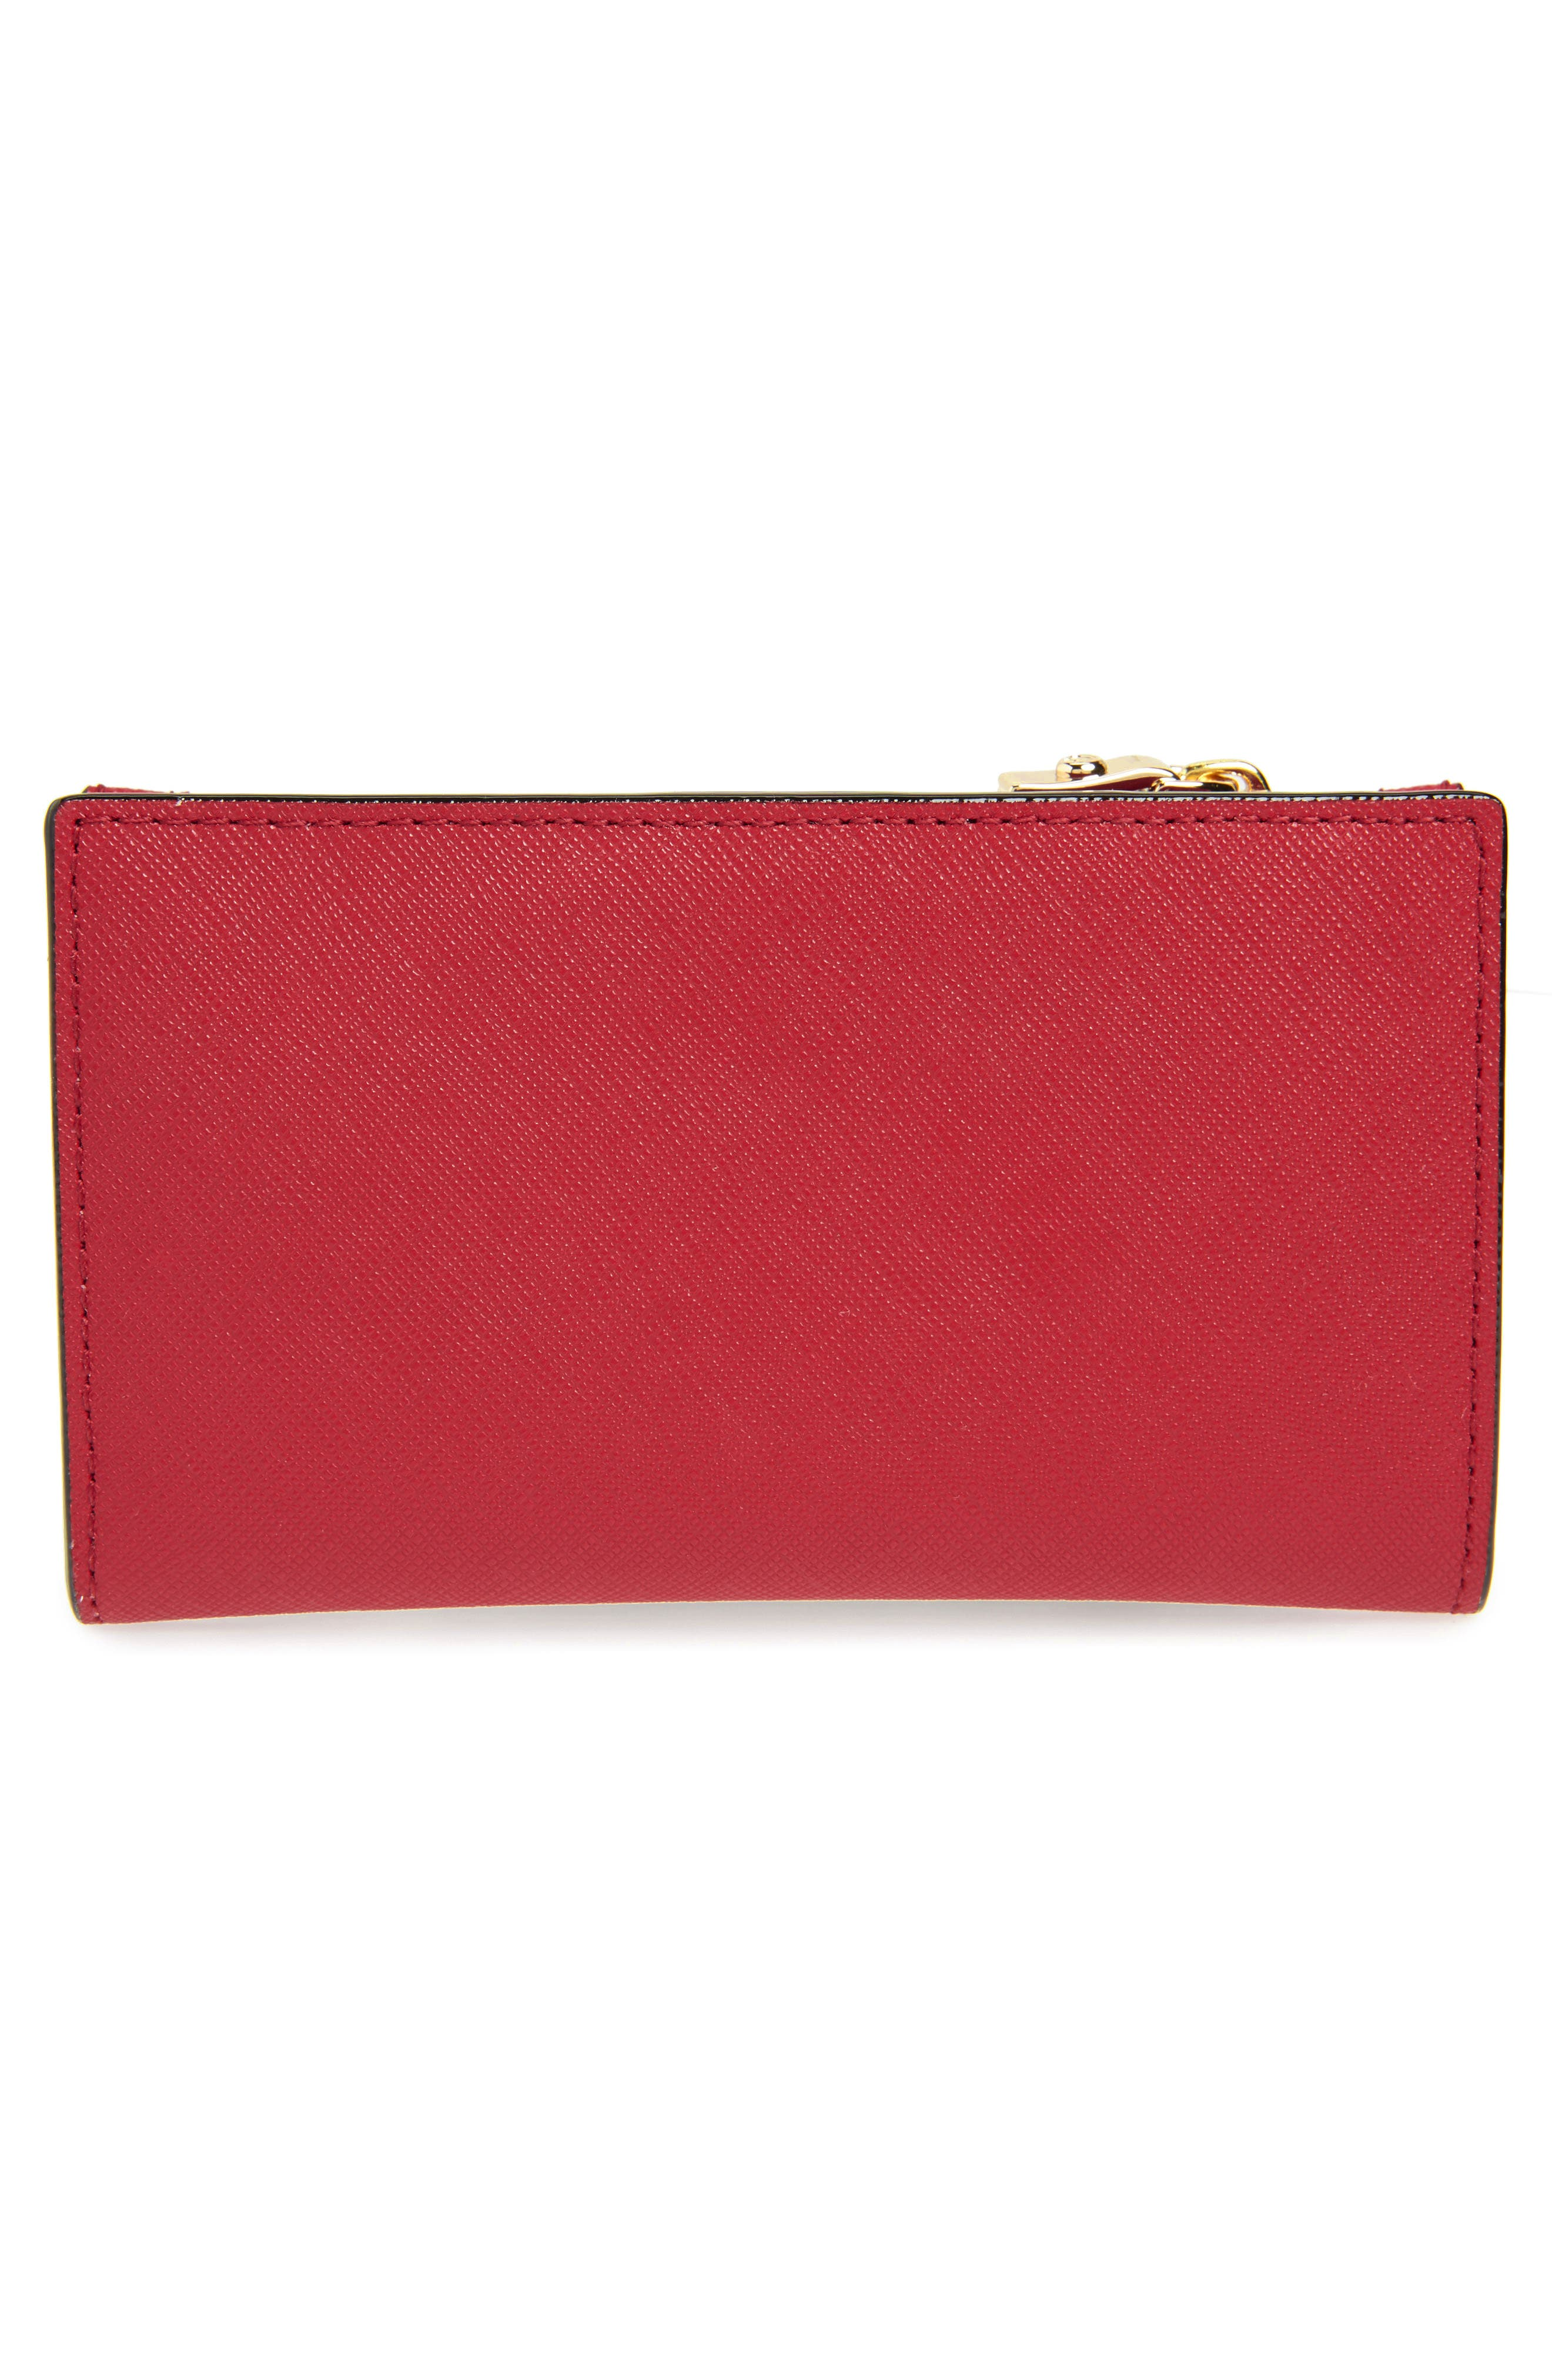 cameron street - mikey leather wallet,                             Alternate thumbnail 4, color,                             600